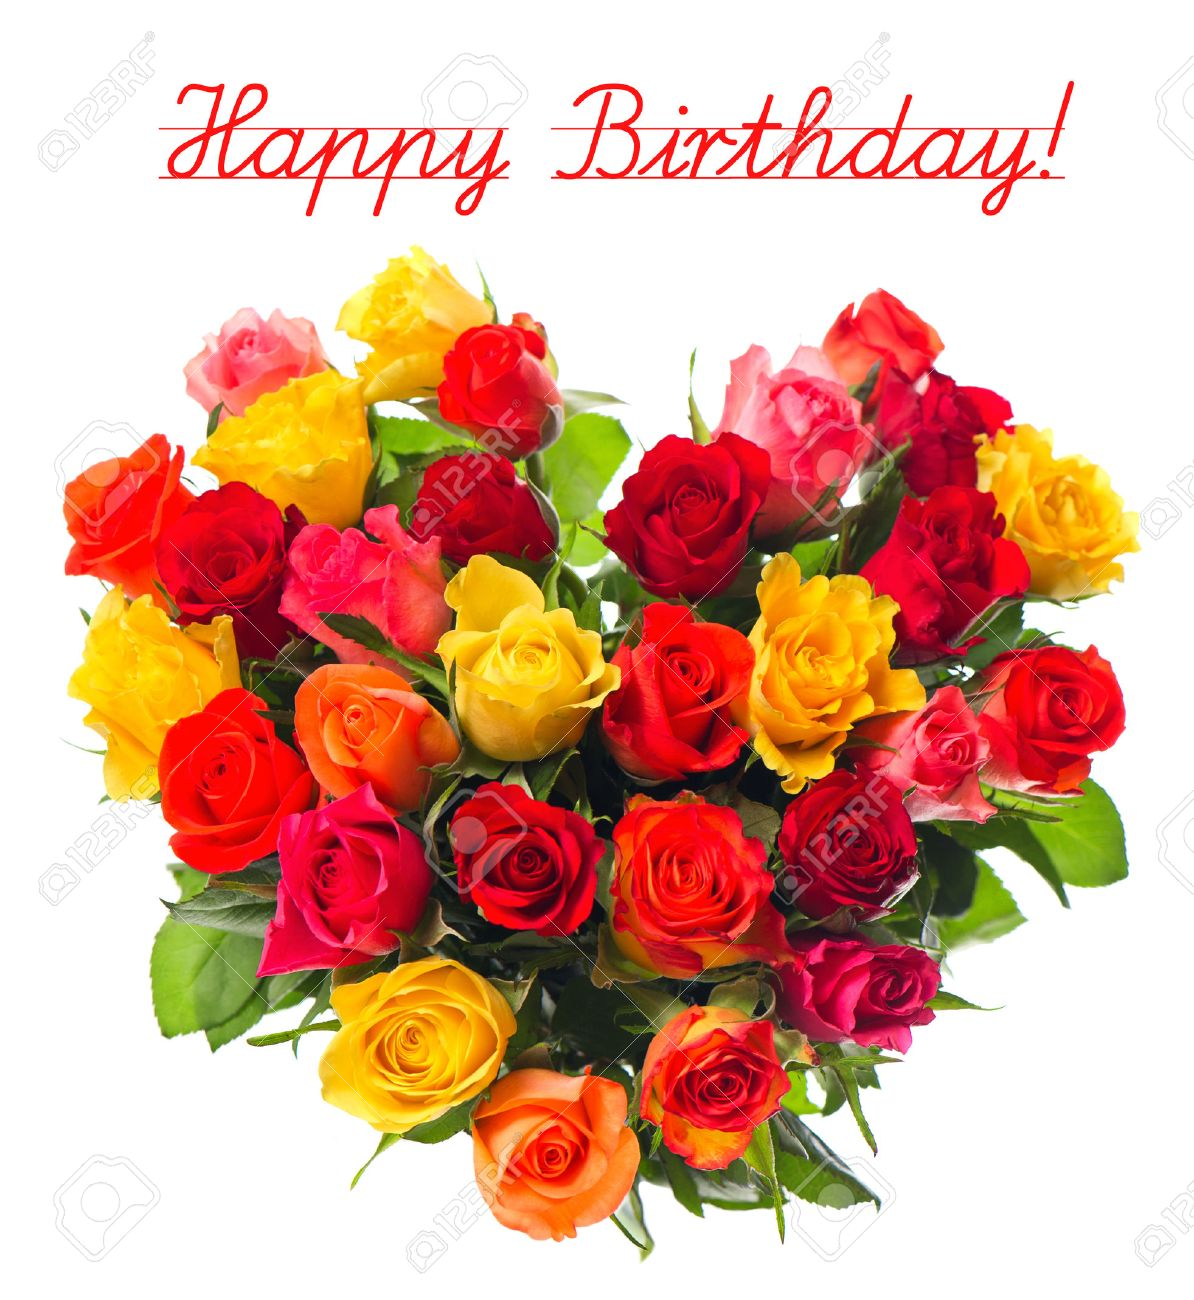 Happy Birthday Card Concept Bouquet Of Colorful Assorted Roses In Heart Shape On White Background